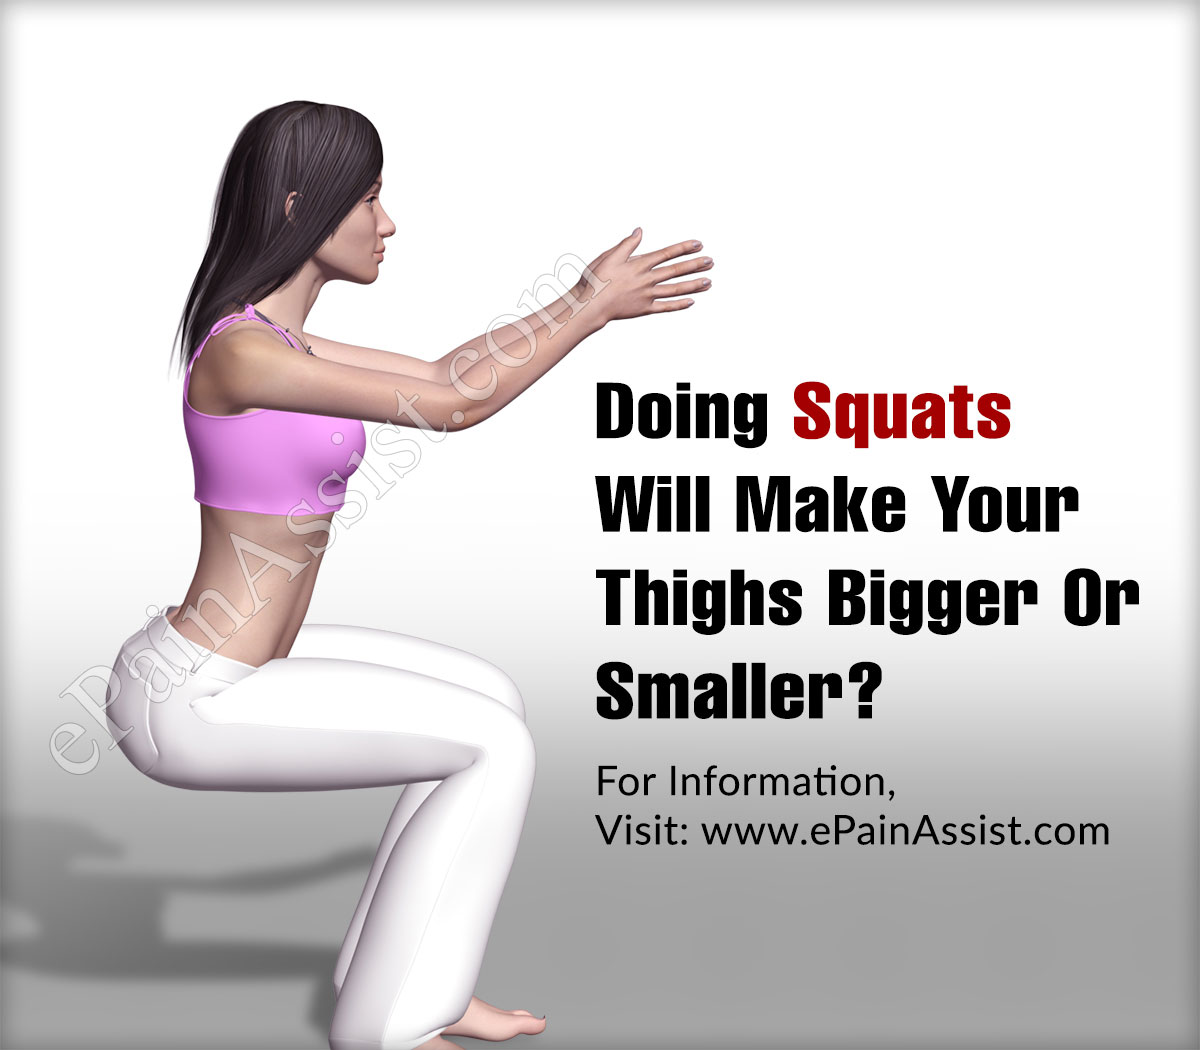 Doing Squats Will Make Your Thighs Bigger Or Smaller?